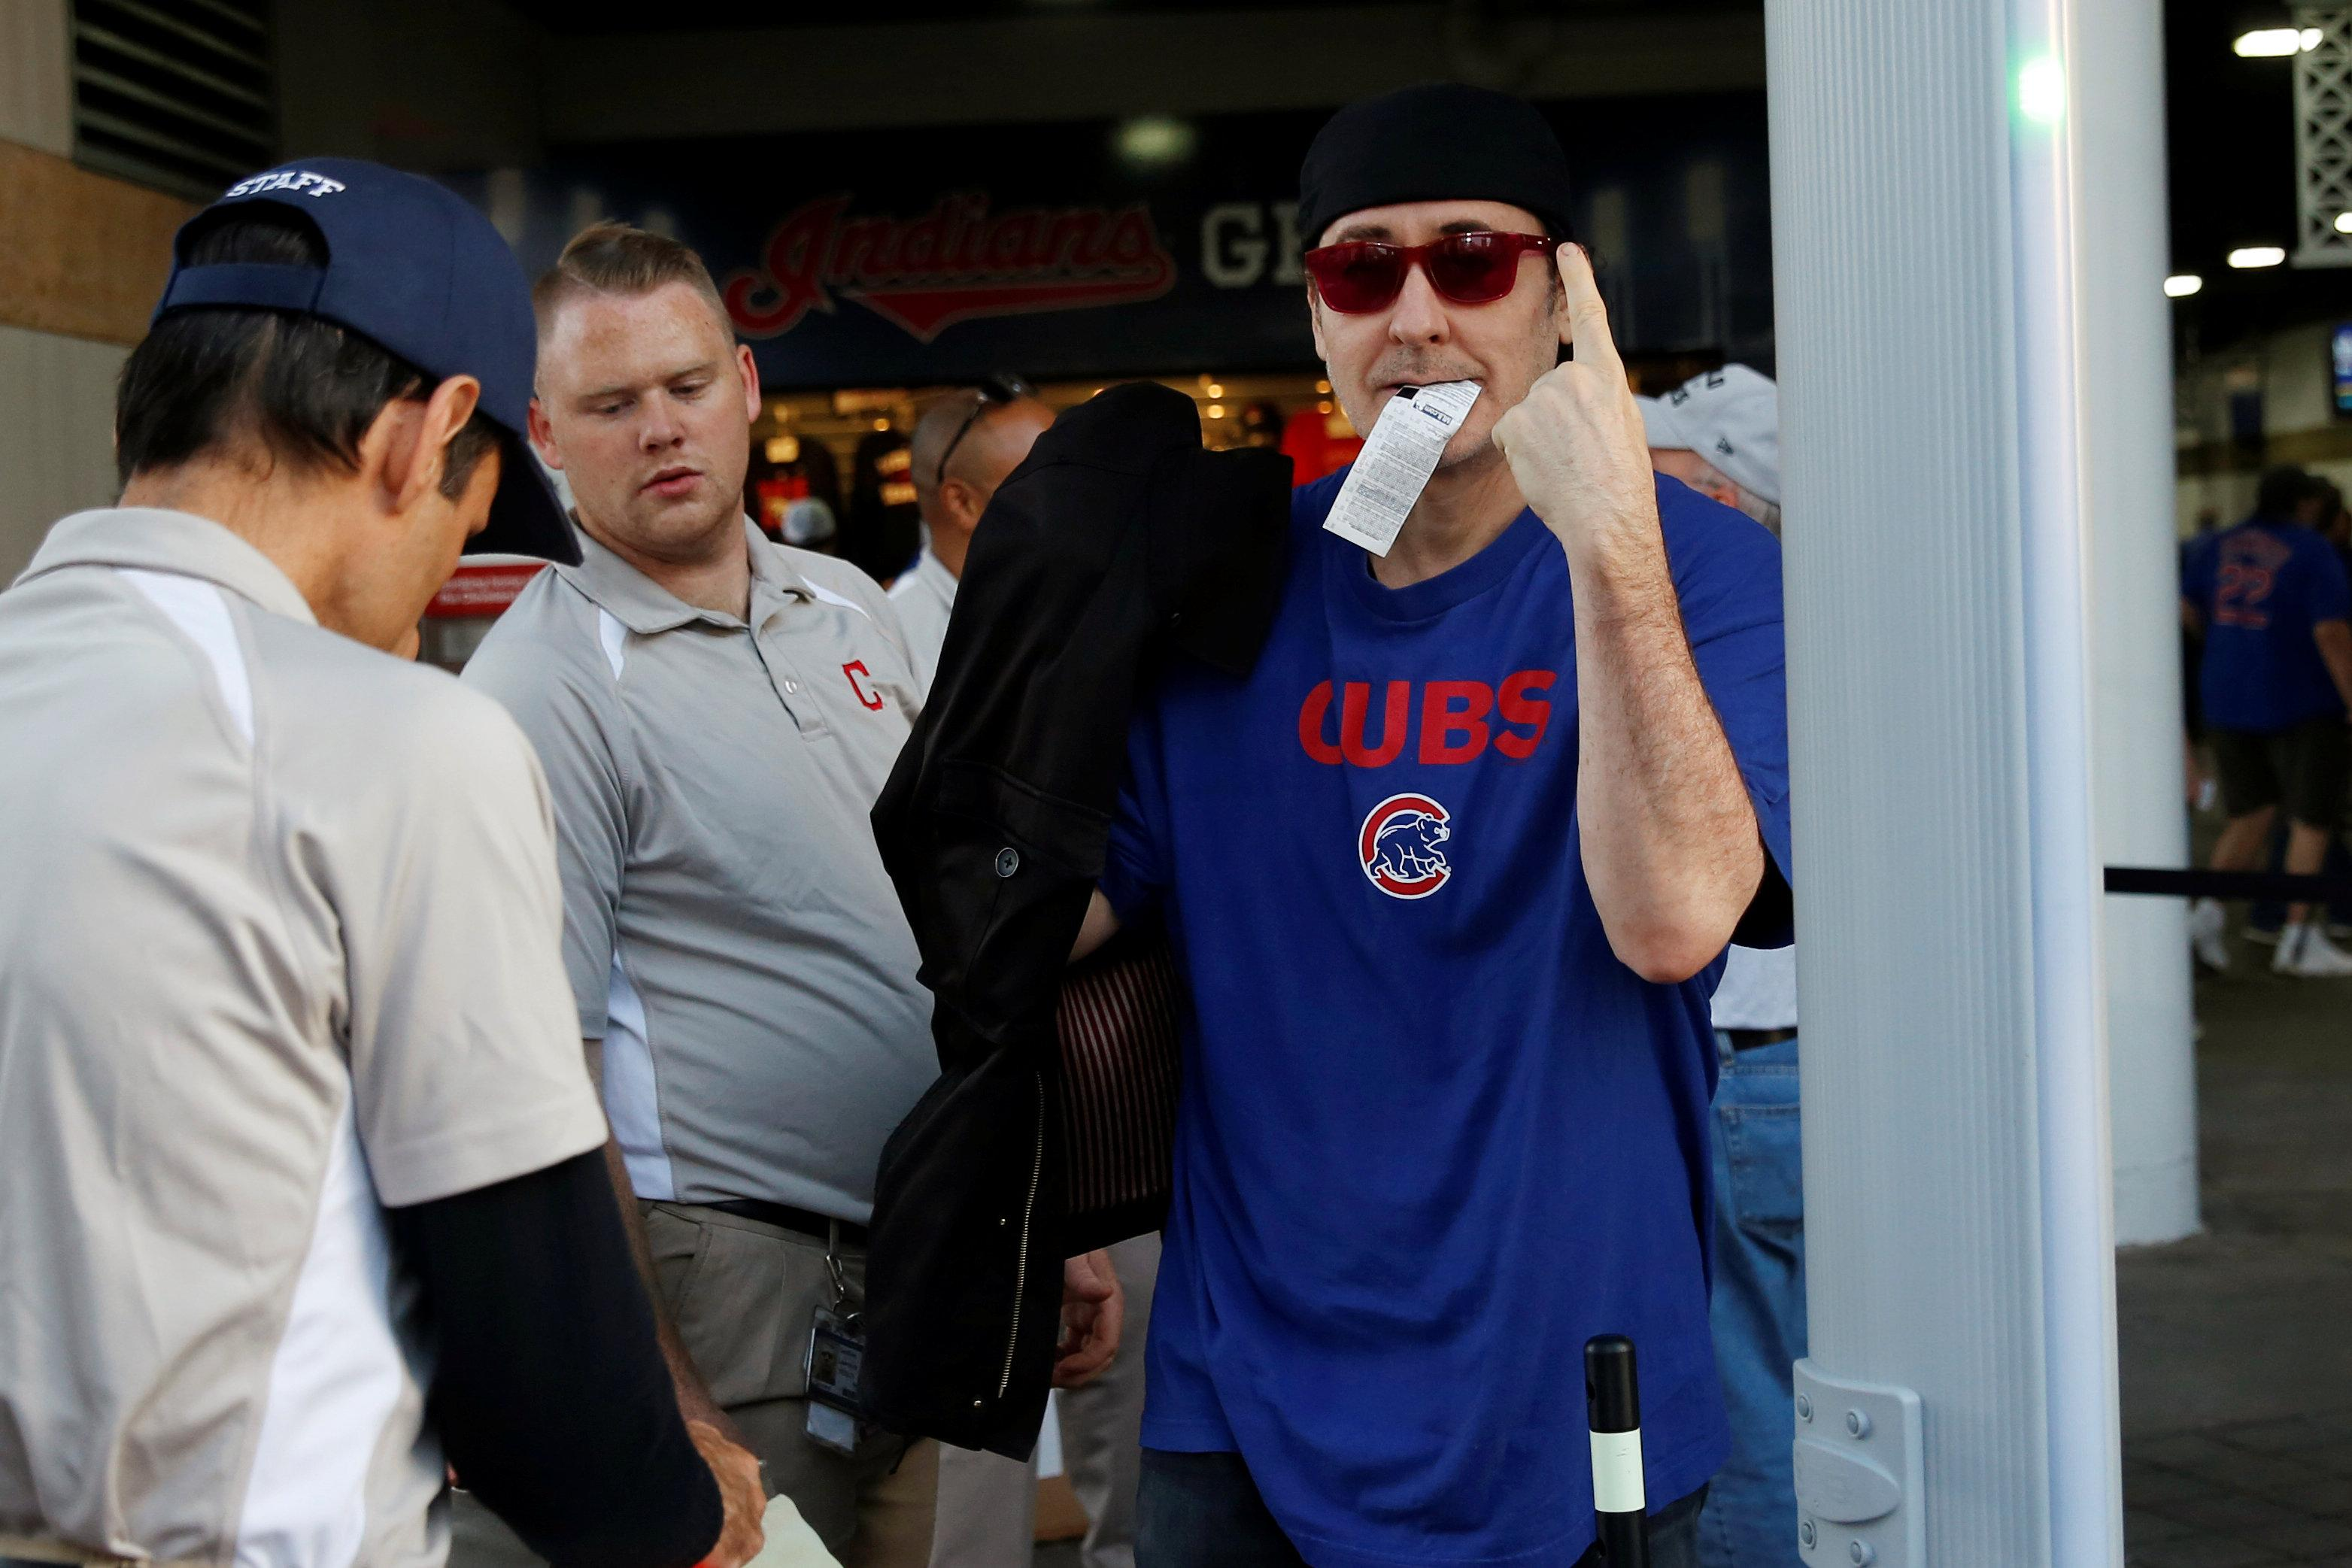 6e185d5b7cb3d Actor John Cusack arrived early for the final game of the 2016 World Series  to cheer on the Chicago Cubs at Progressive Field in Cleveland